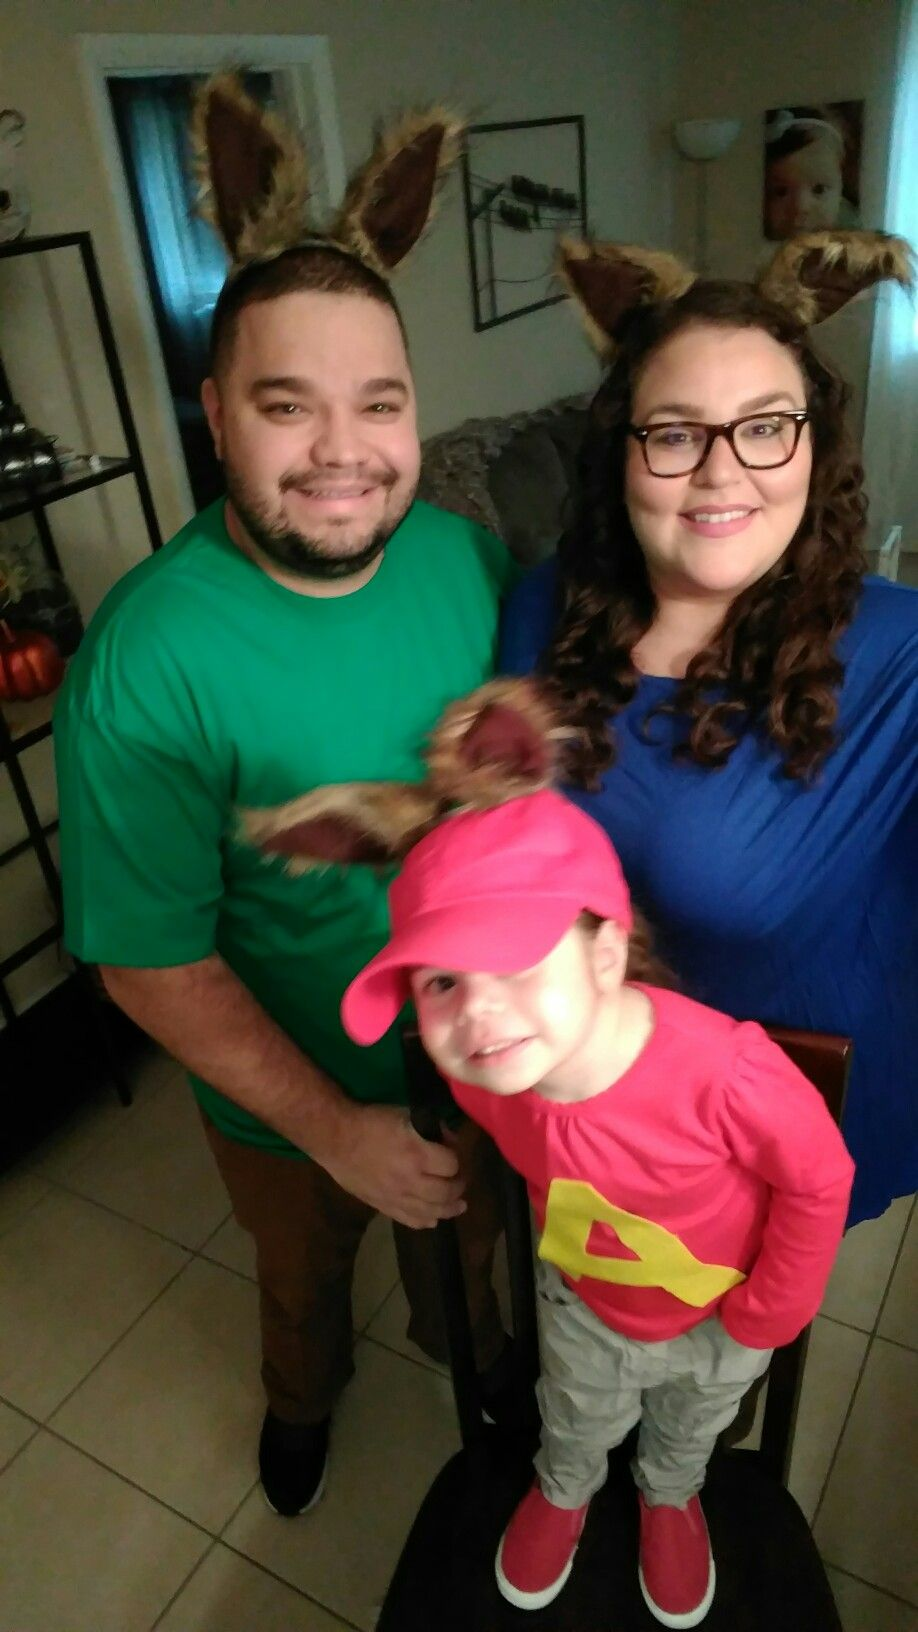 Alvin And The Chipmunks Family Diy Costume Alvin And The Chipmunks Diy Costumes Family Diy